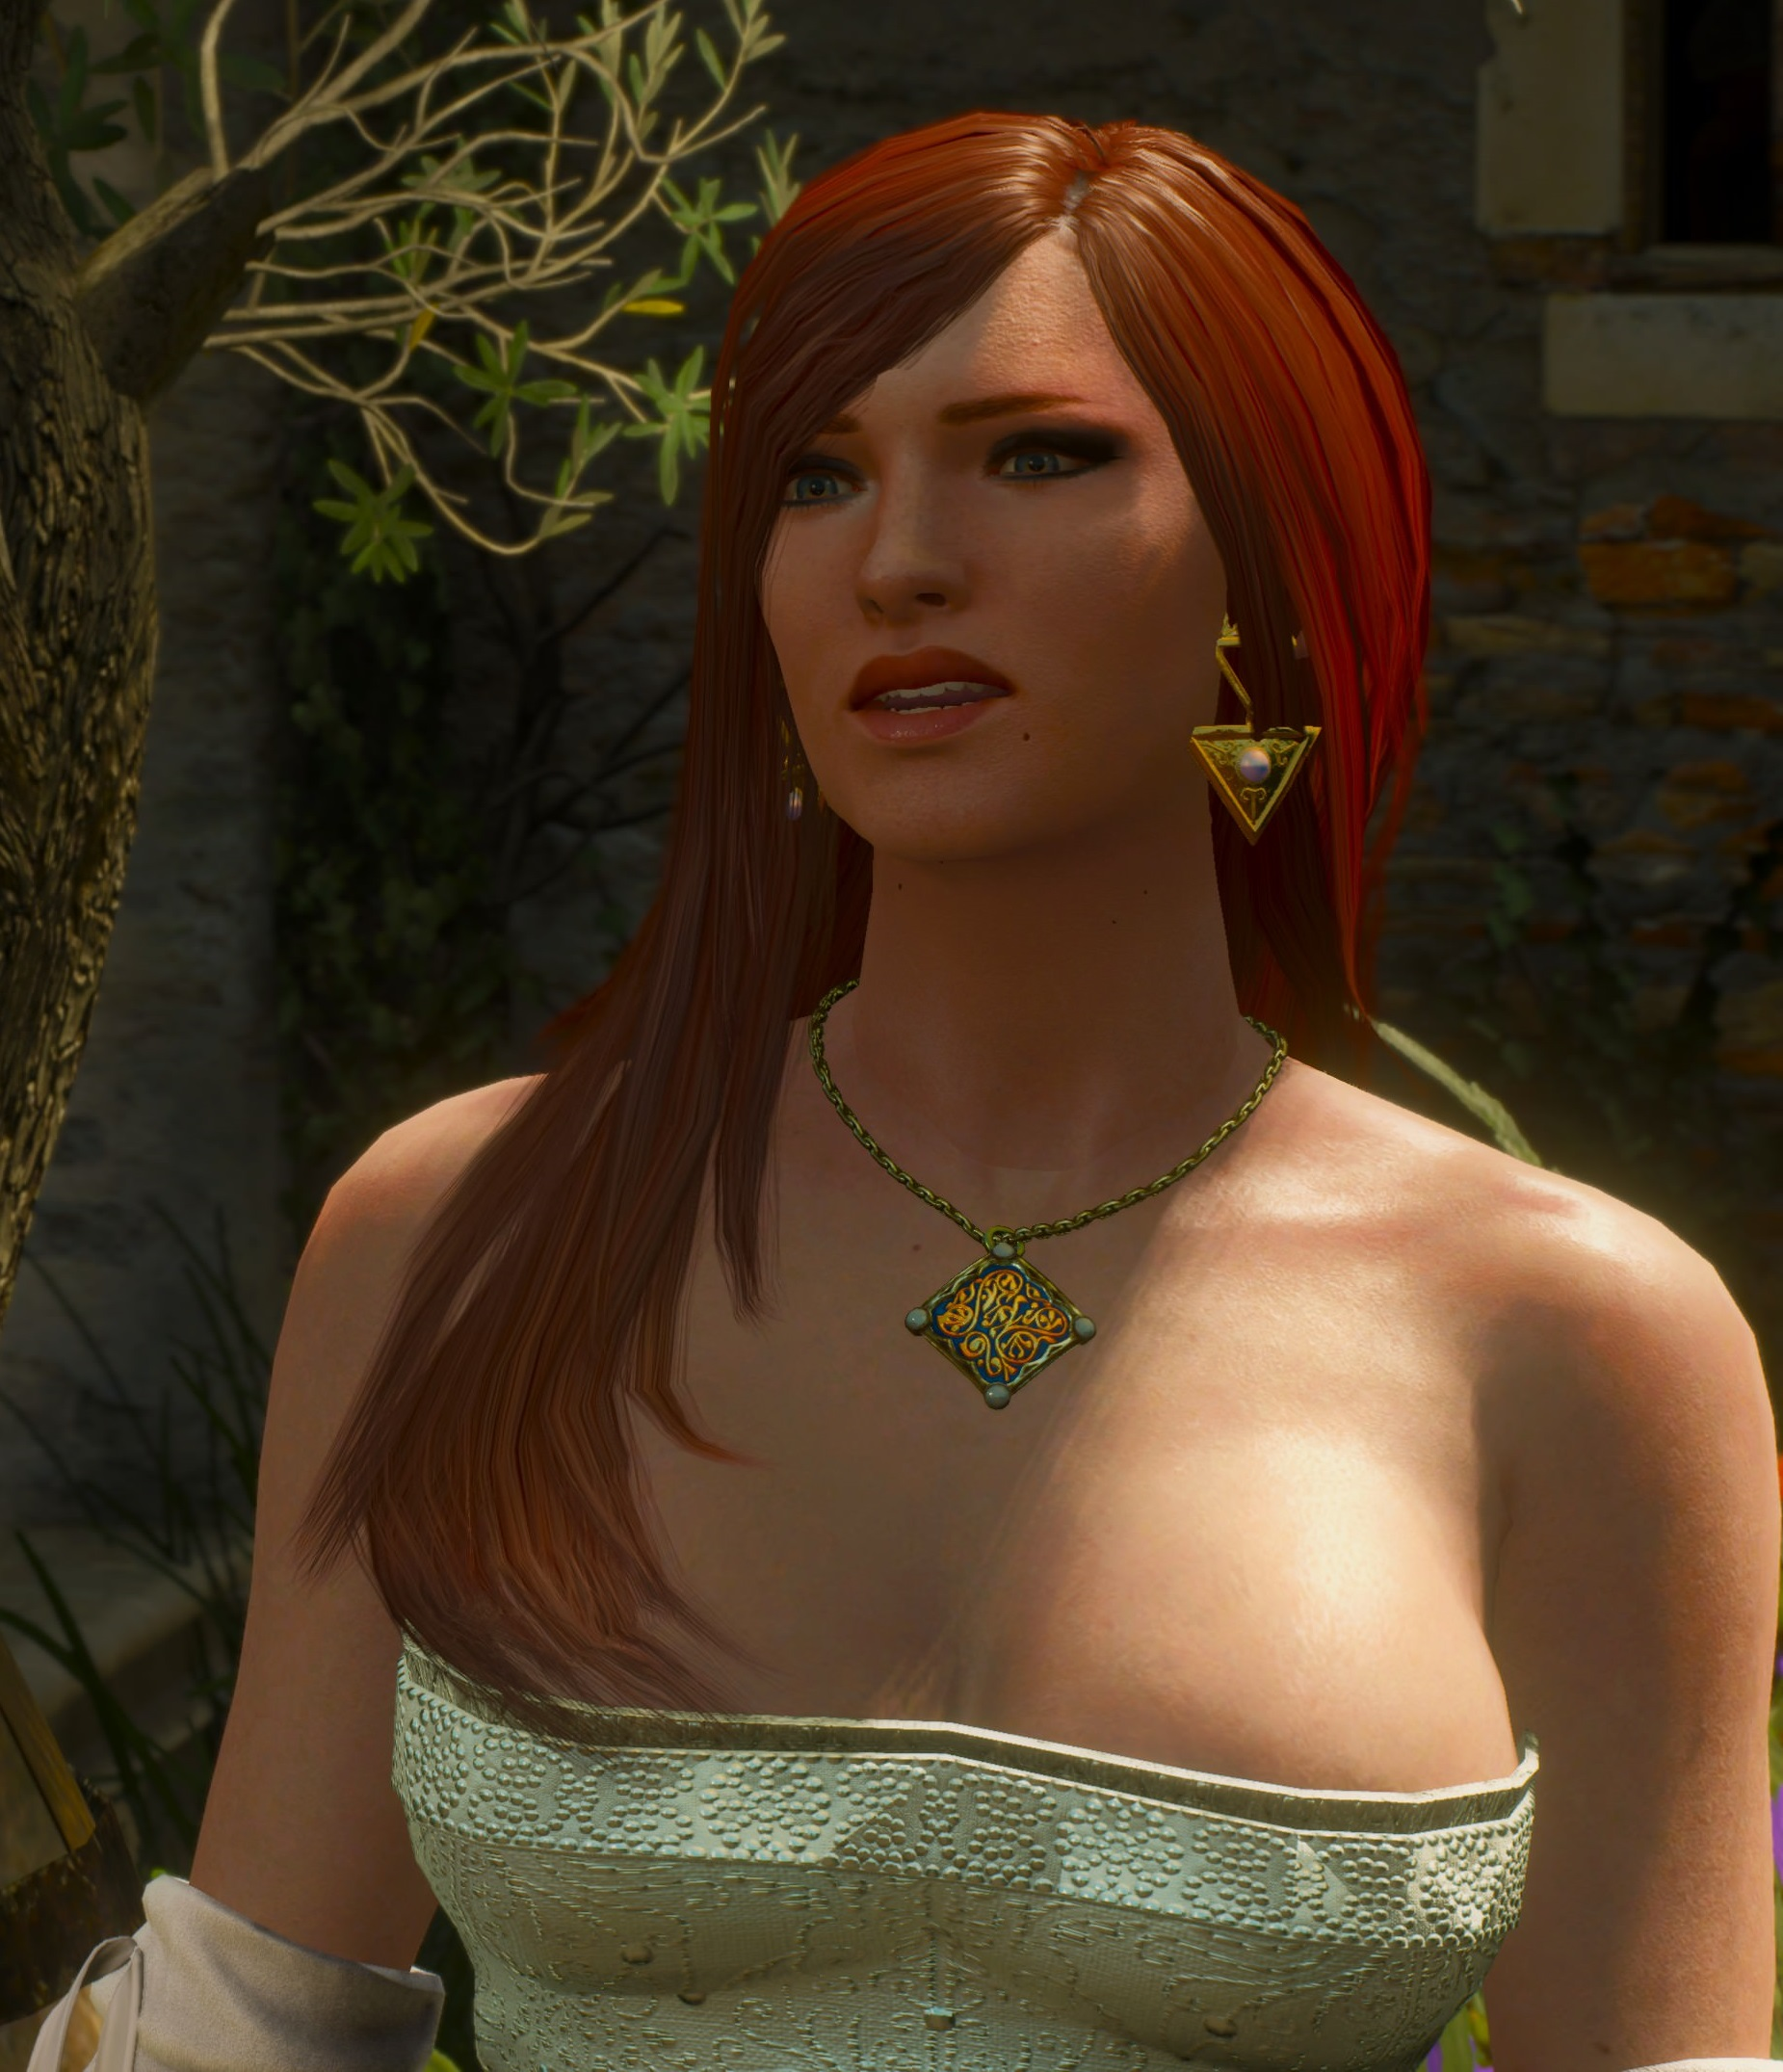 Improved Triss at The Witcher 3 Nexus - Mods and community